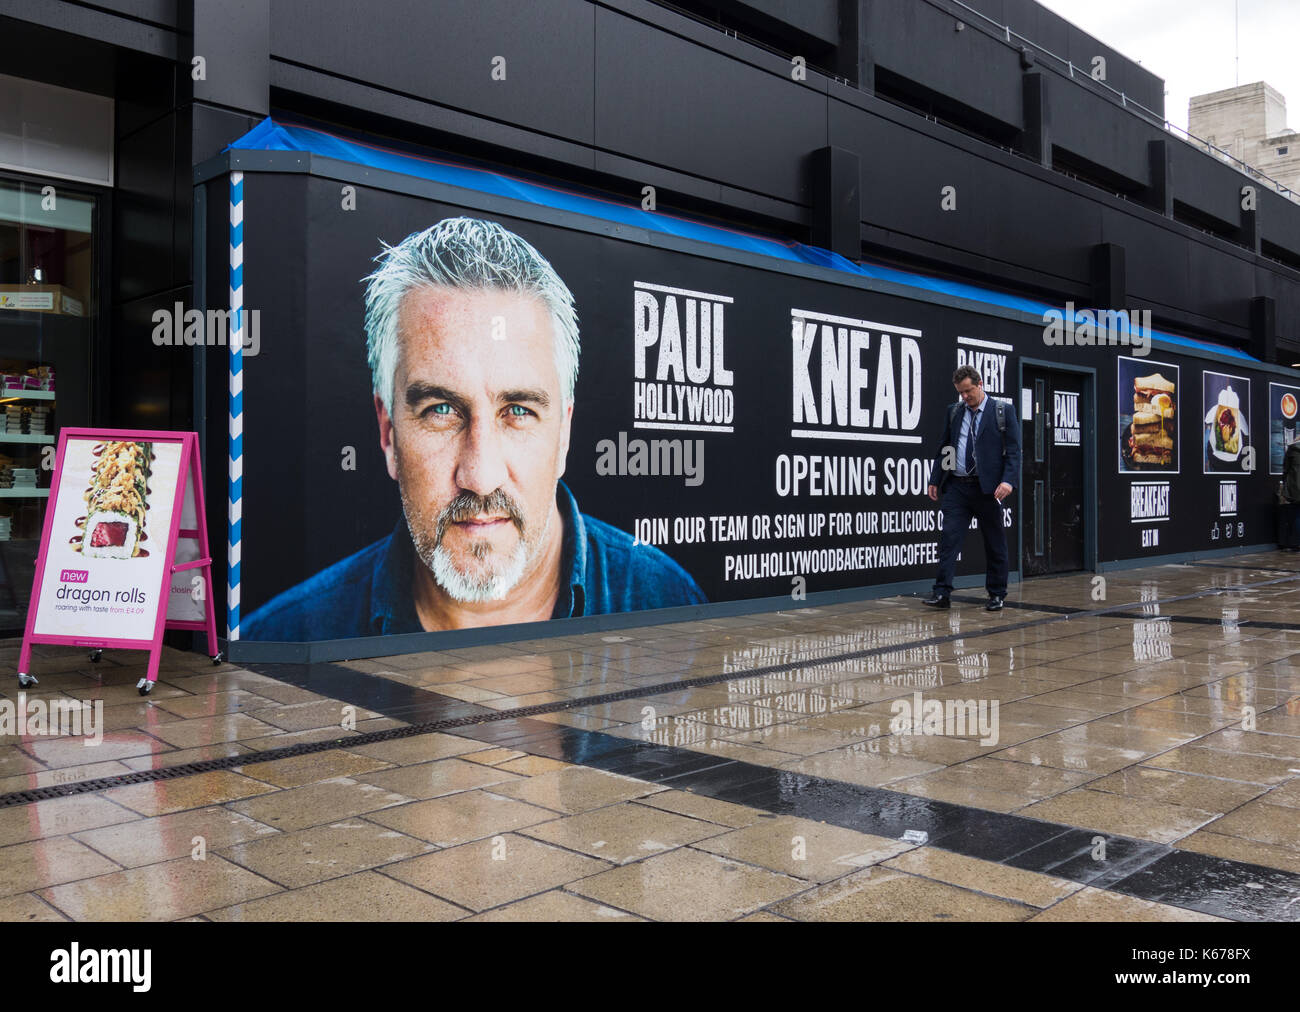 The first of Paul Hollywood's new chain of Knead Bakeries and Coffee Shops at Euston Station, London, UK - Stock Image